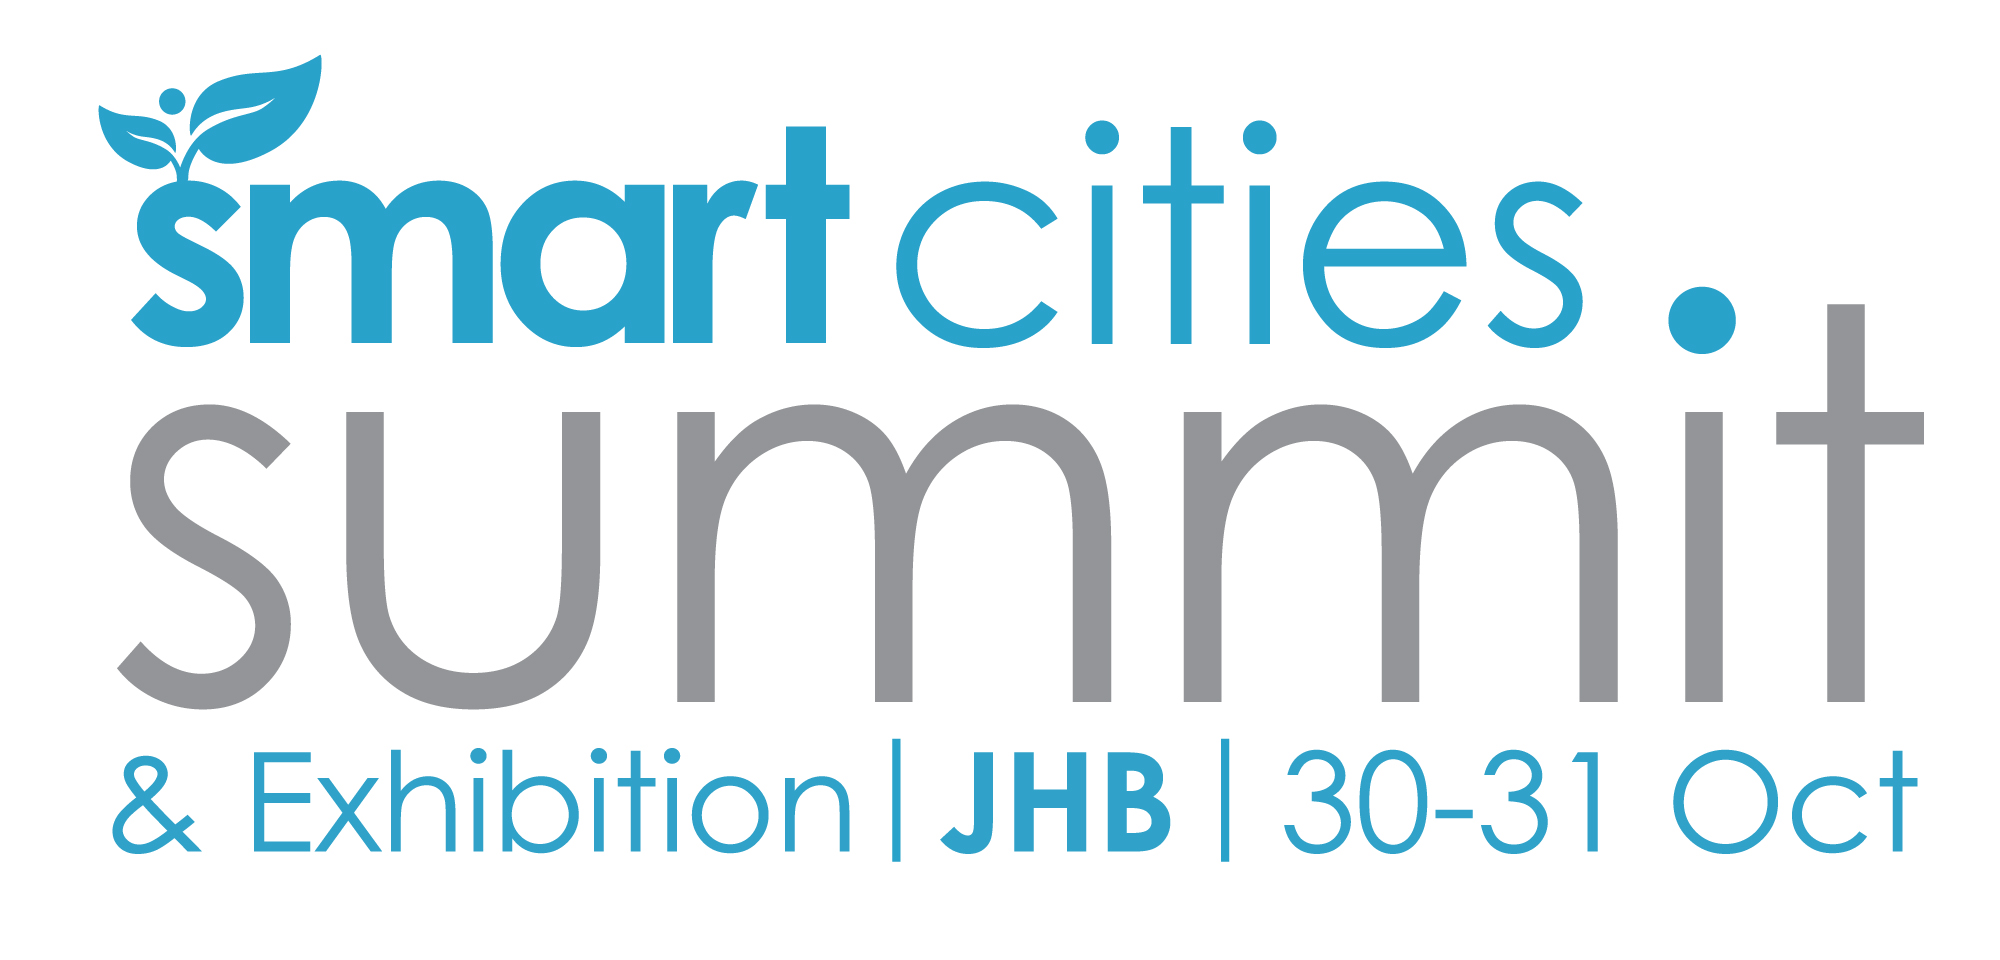 Smart cities logo 2012 jhb